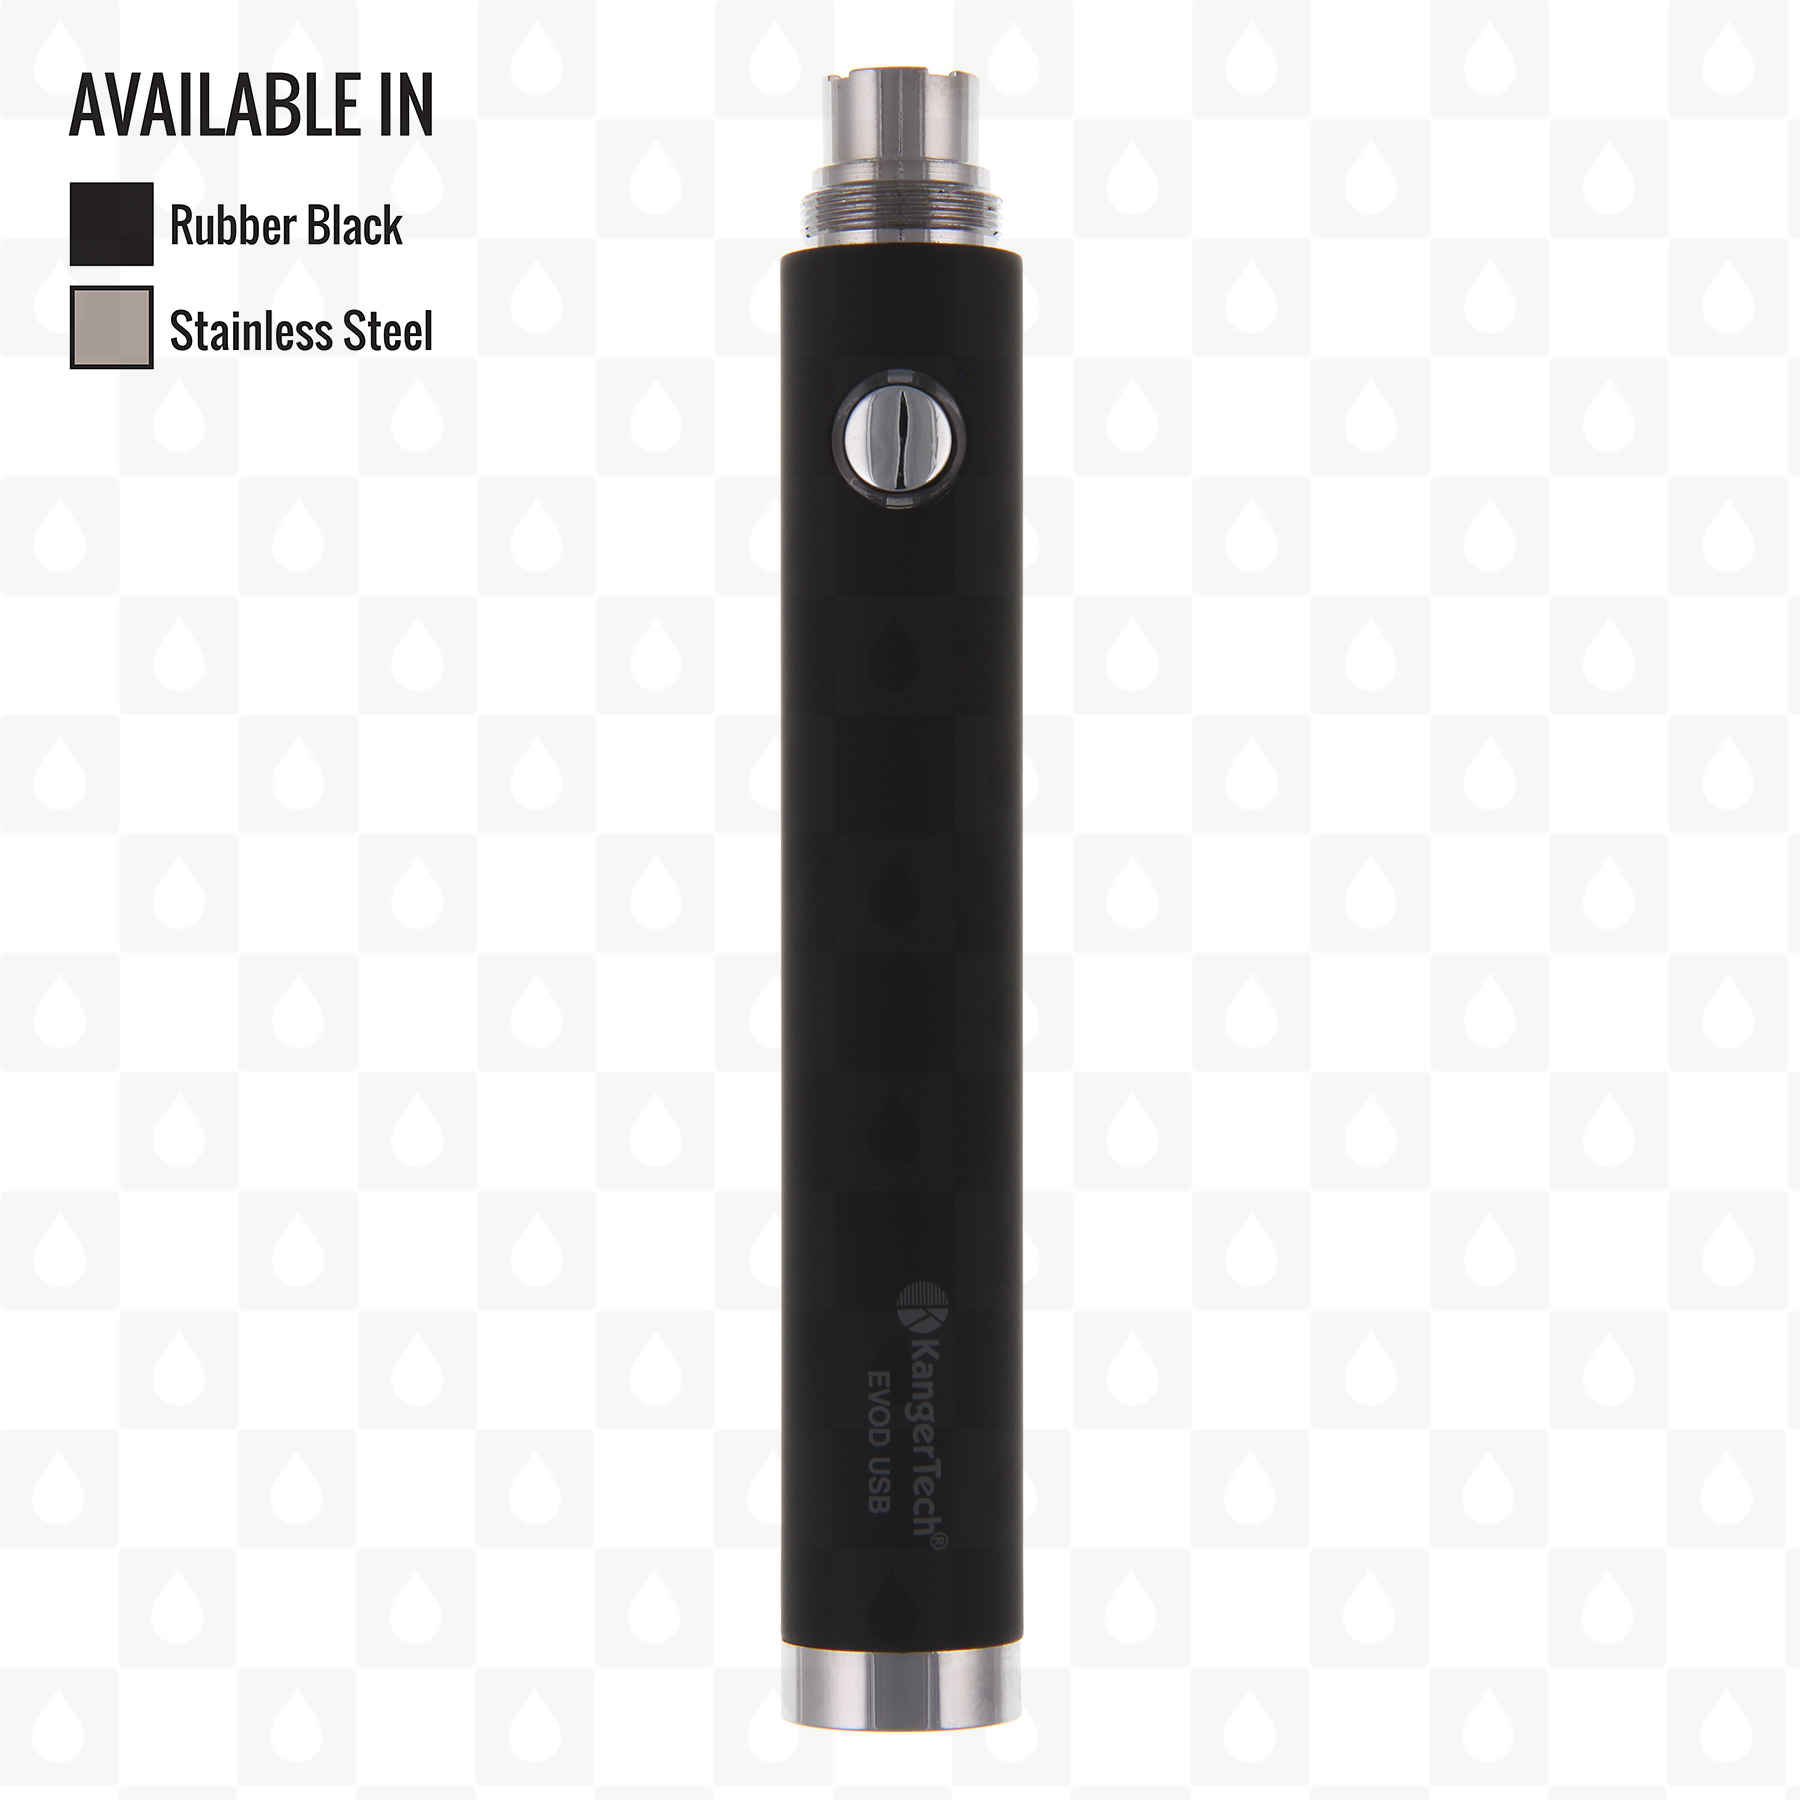 Kanger Evod Usb Passthrough E Cigarette Battery Includes Lead Wiring Including The Power Inside Coilsbox My Term Rubber Black 650mah